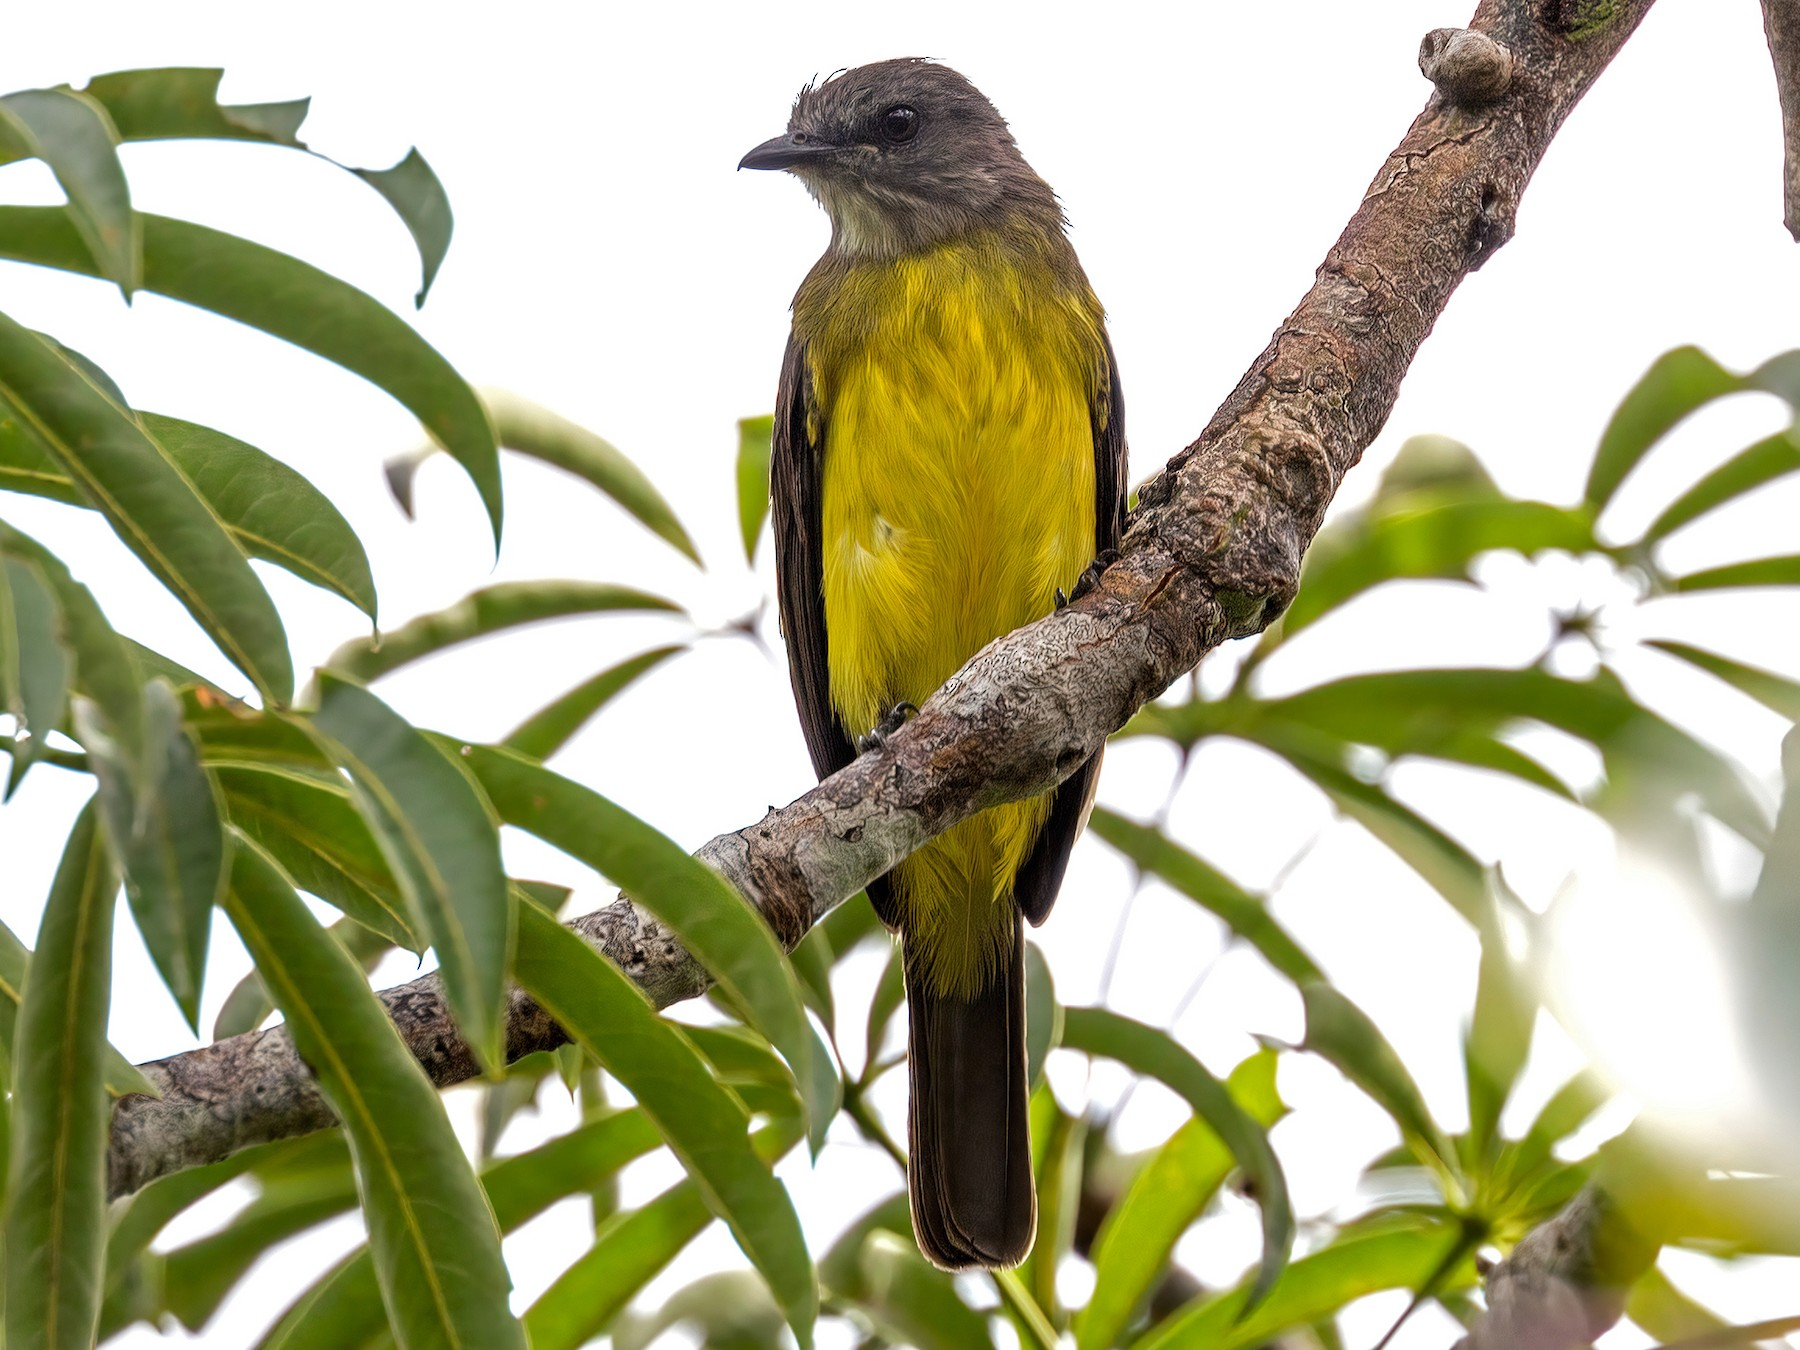 Dusky-chested Flycatcher - Renato Espinosa